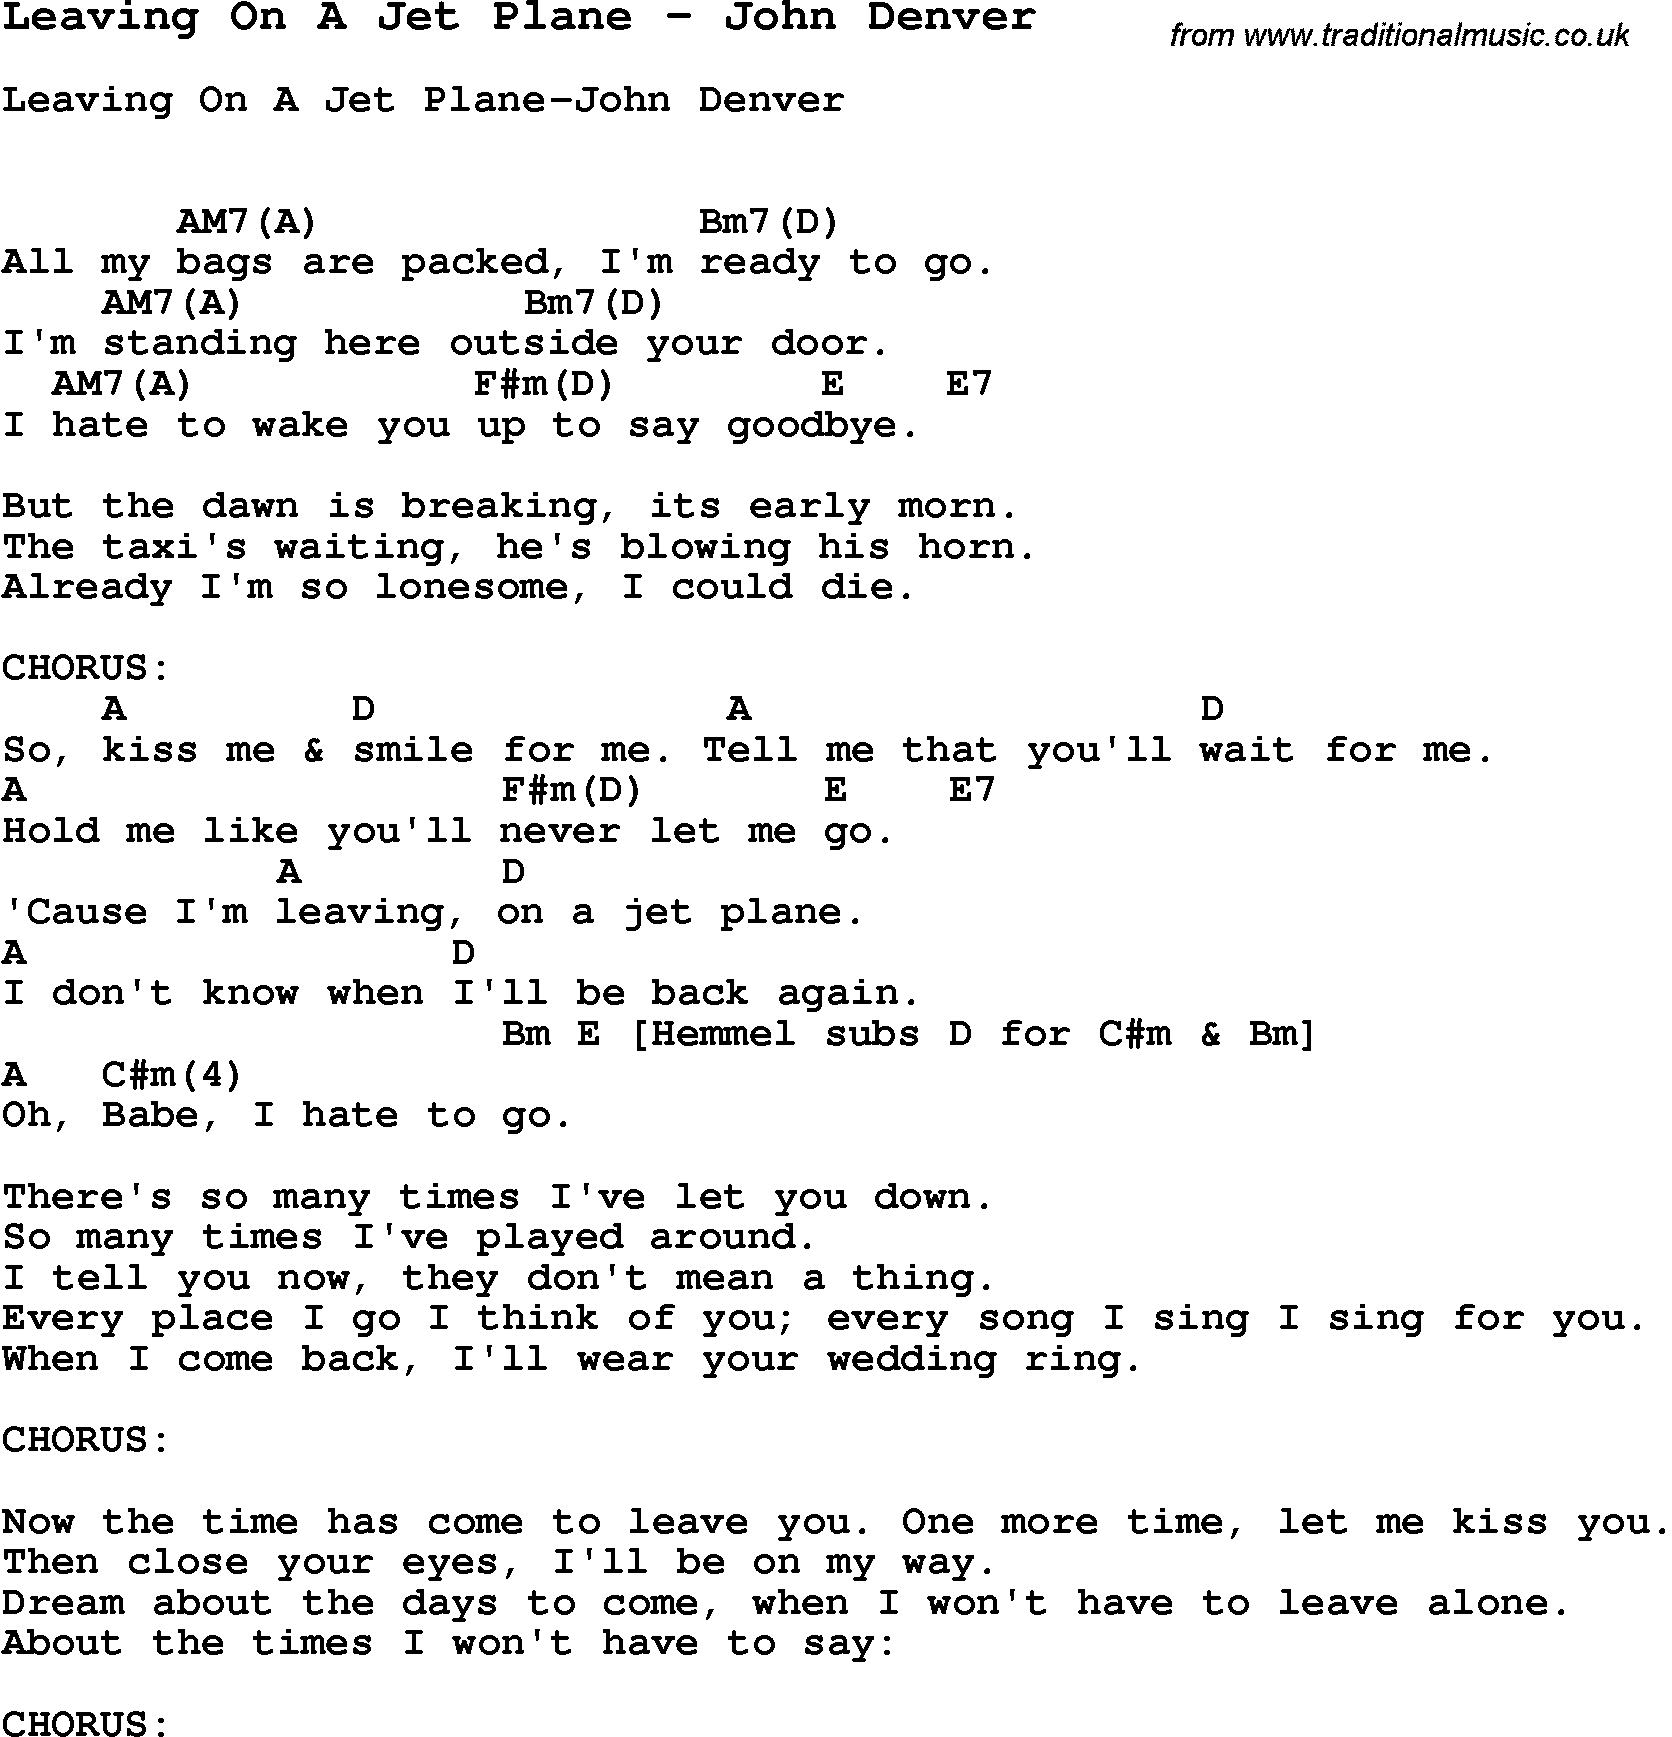 Song leaving on a jet plane by john denver song lyric for vocal song leaving on a jet plane by john denver with lyrics for vocal performance and hexwebz Gallery